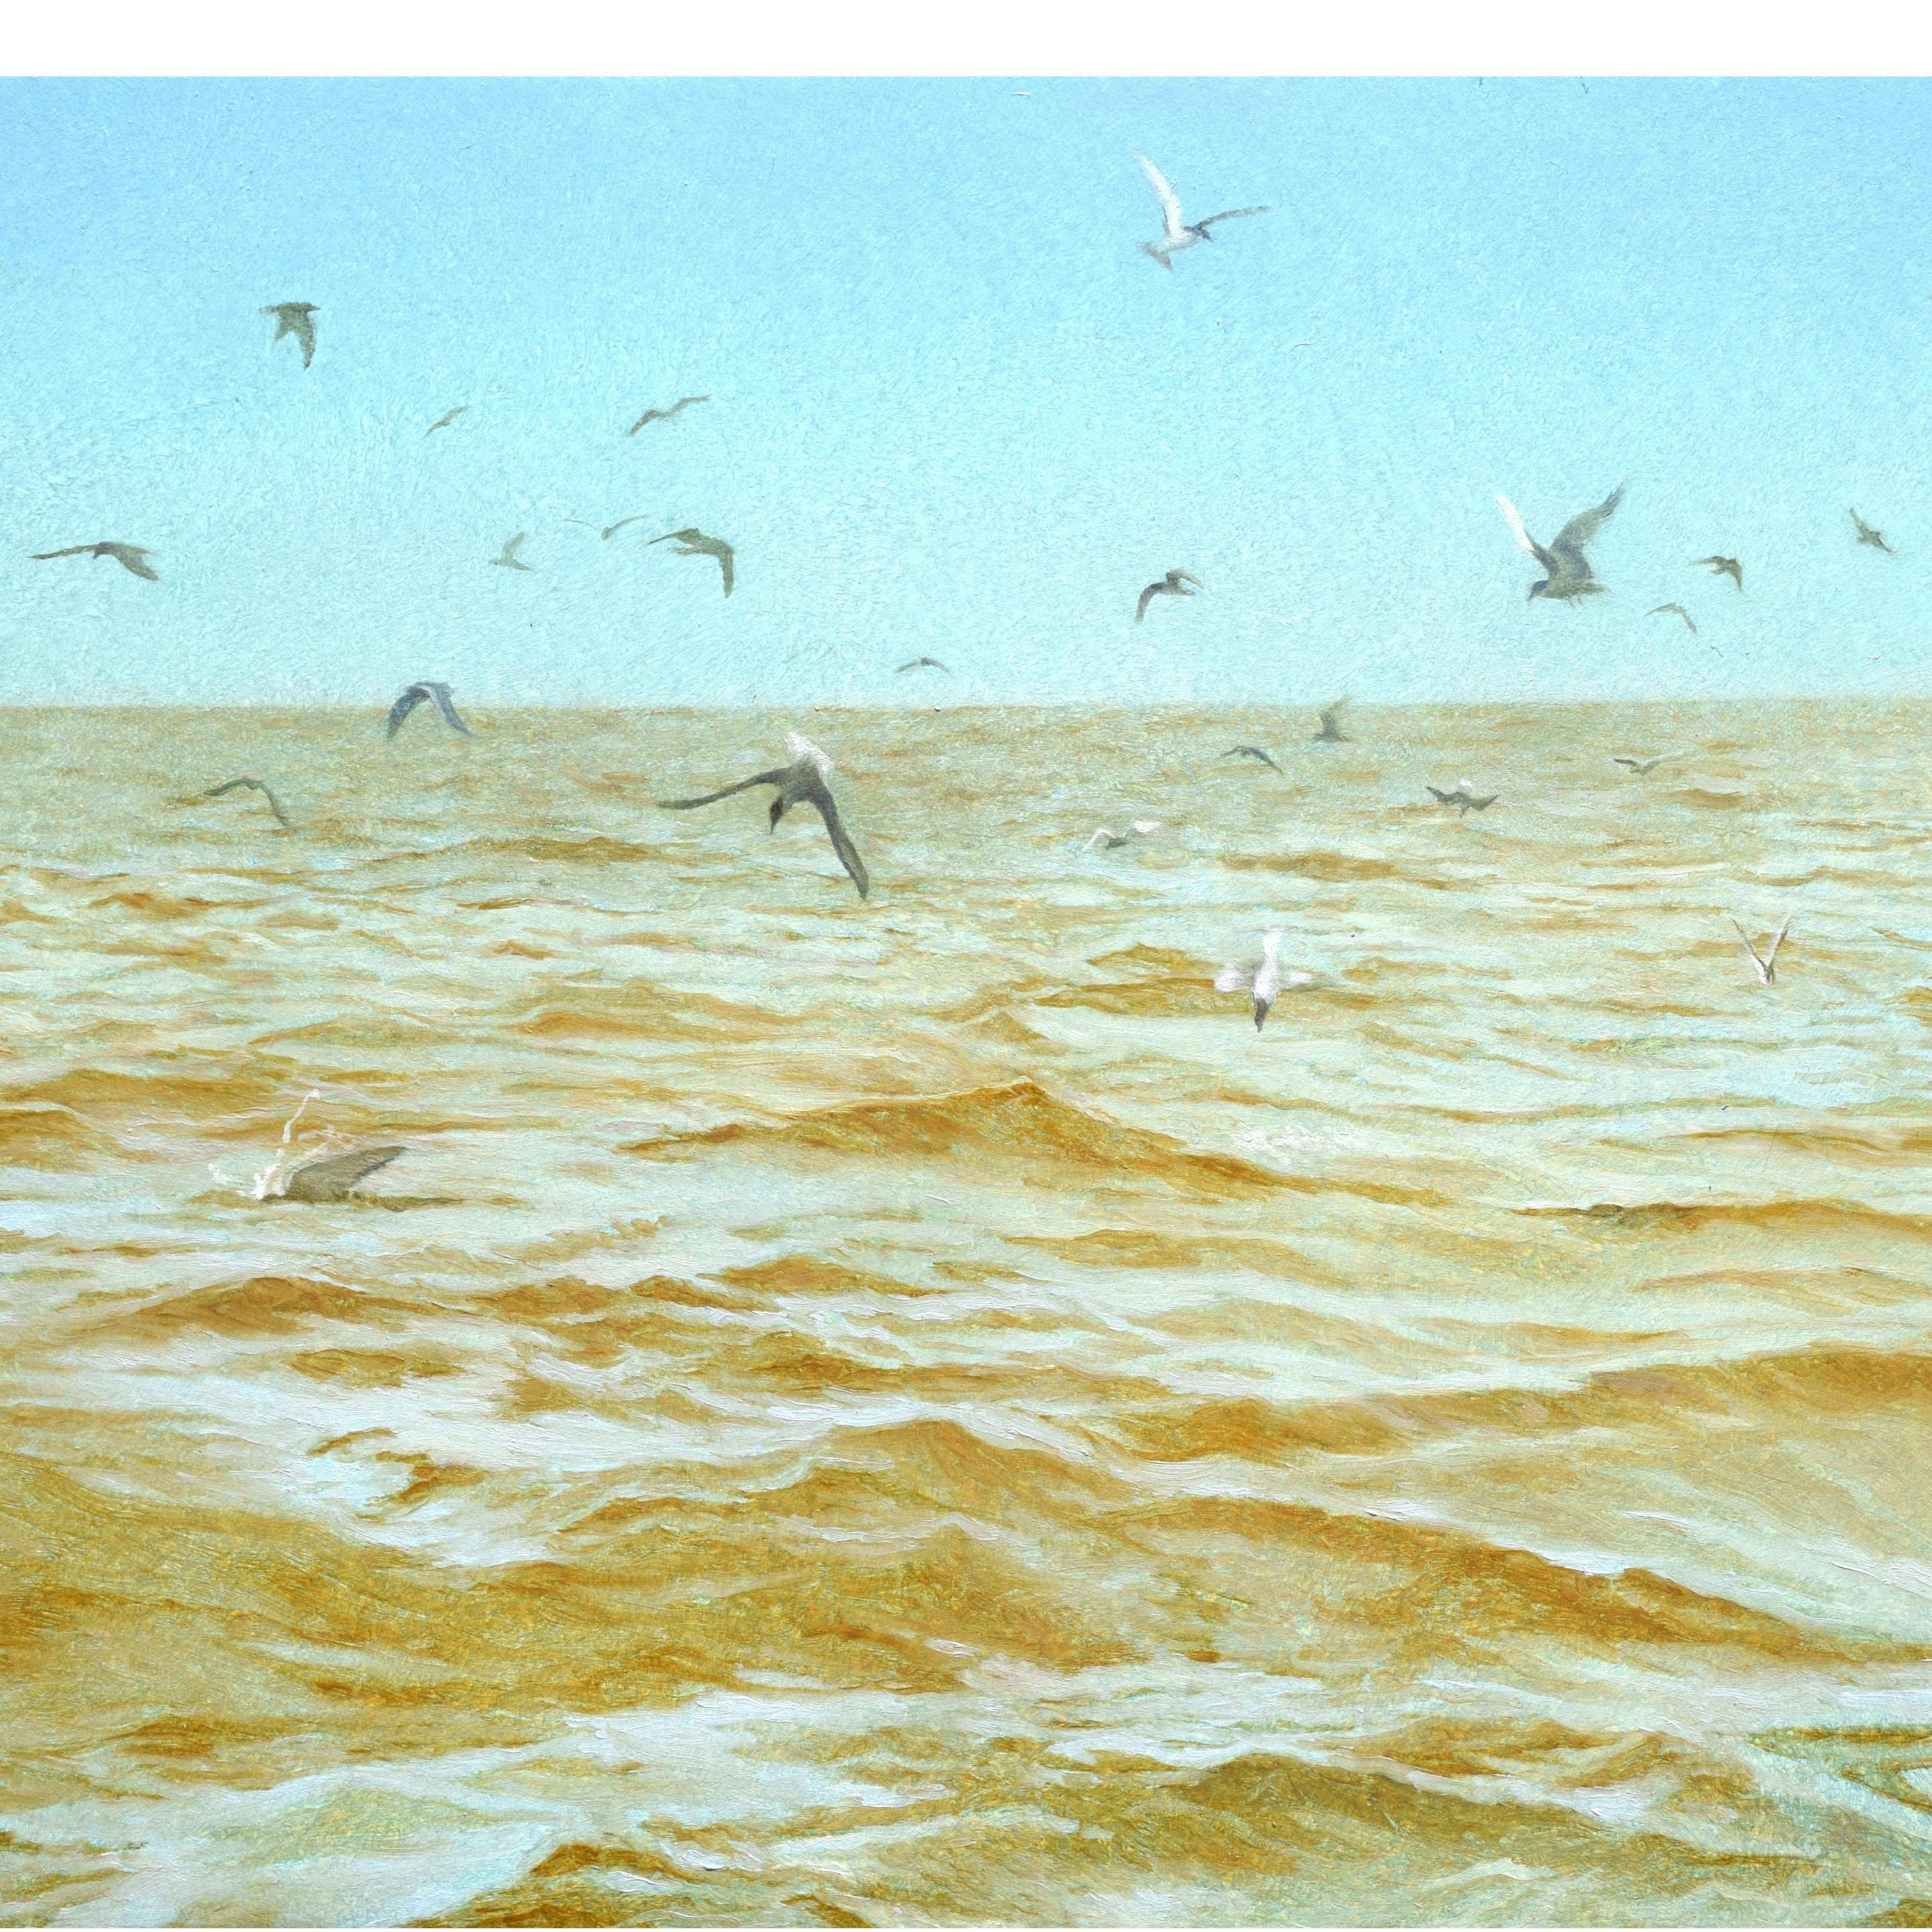 Baumgarten, Study for Seascape with Terns, 9 x 12 inches, oil on panel